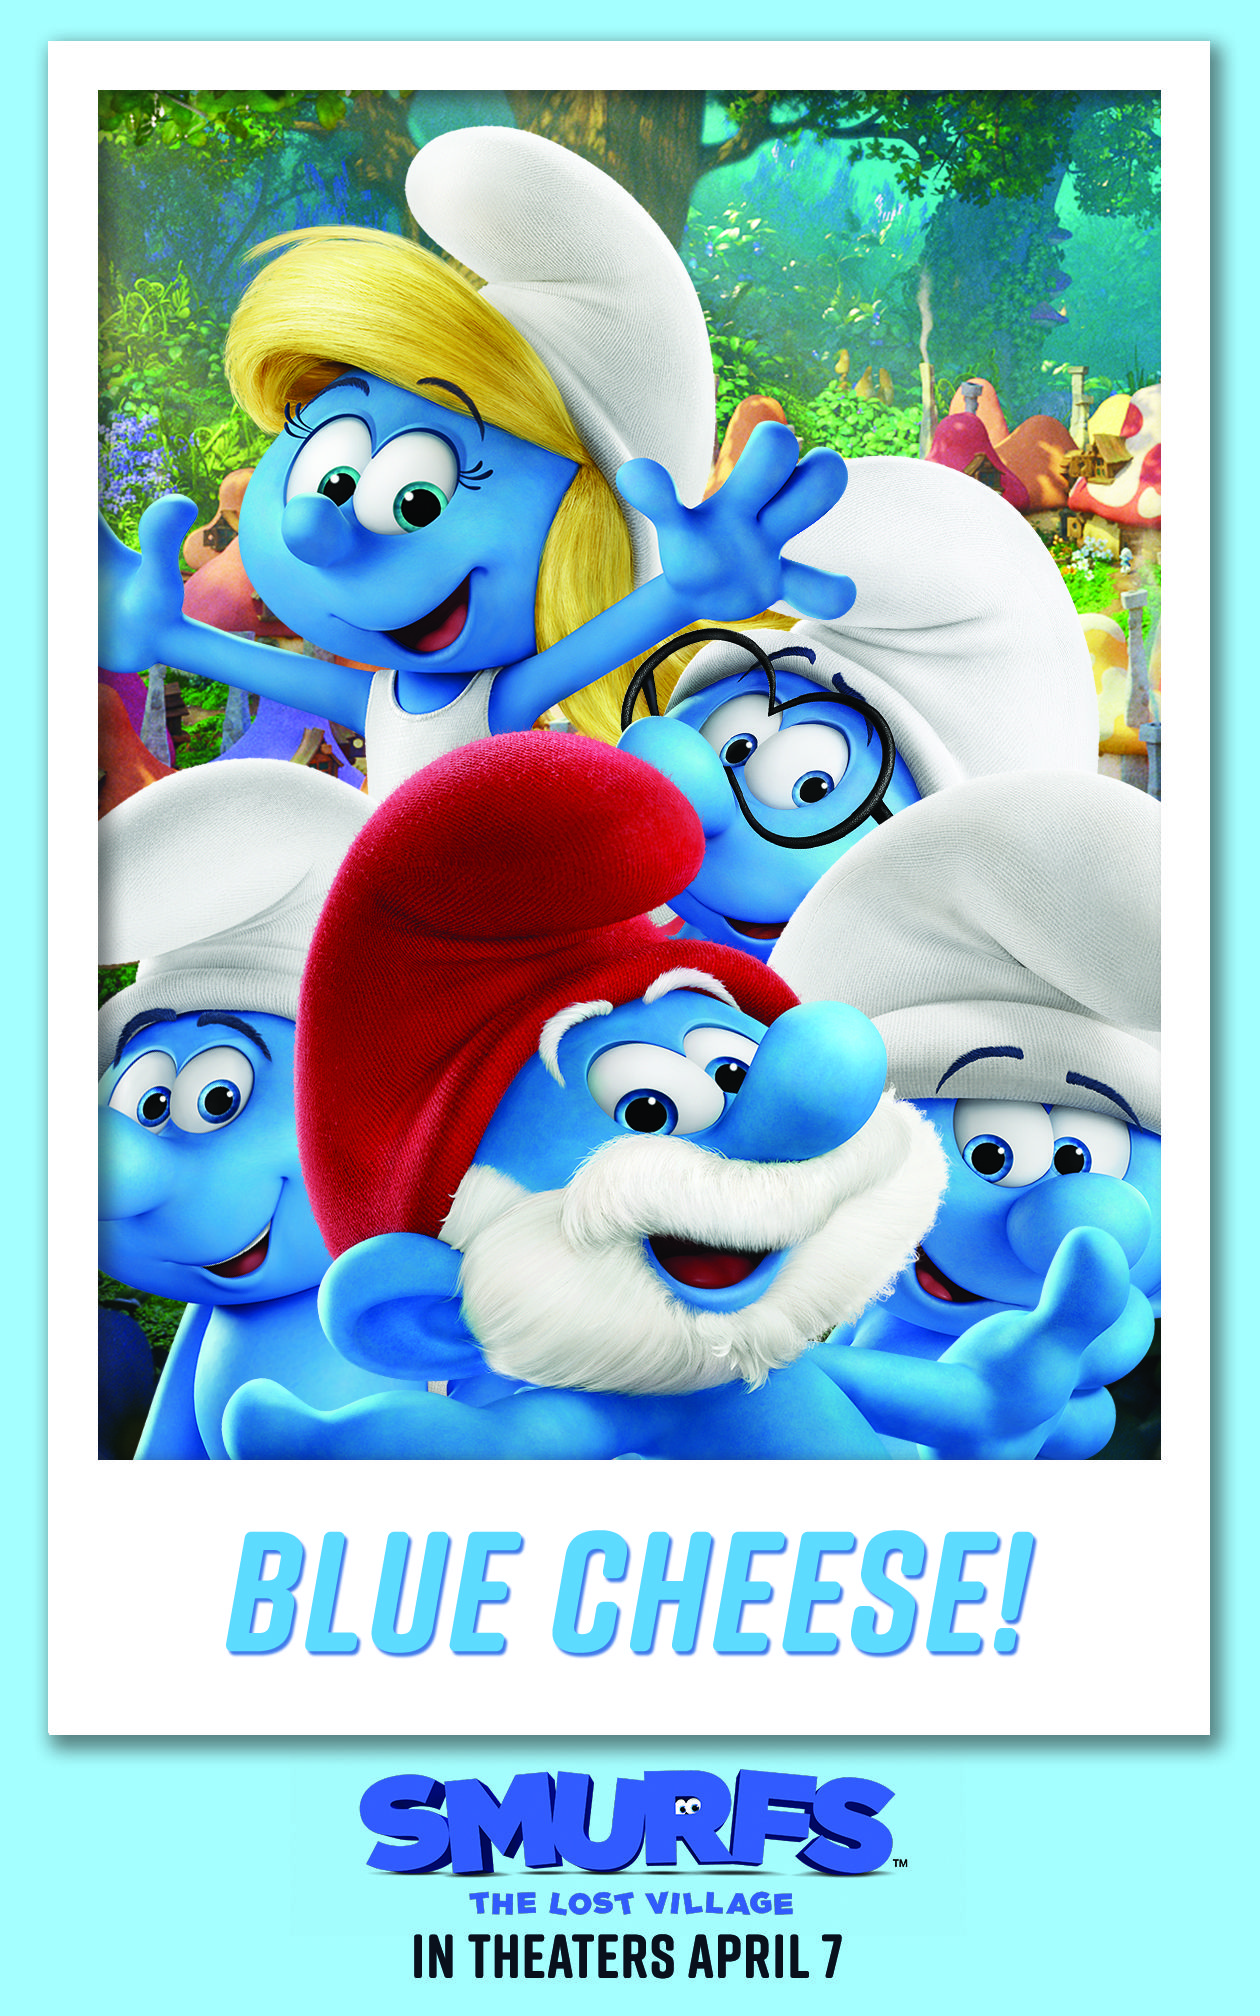 Whos Pumped For The Upcoming Smurfs Adventure In SMURFS THE LOST VILLAGE Smurfette And Her Friends Embark On A Dangerous Journey To Uncover Biggest